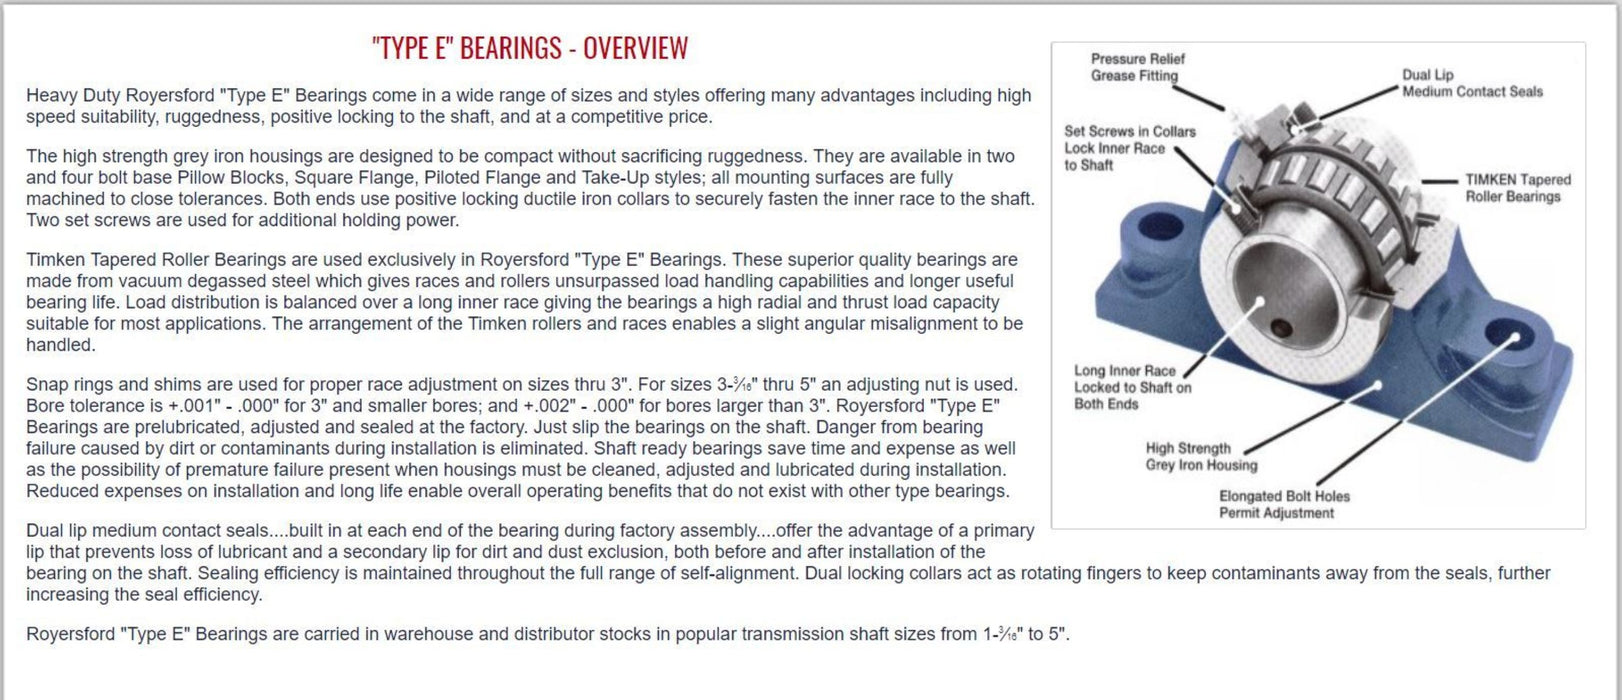 20-05-0204, ROYERSFORD TYPE E 4 Bolt Square Flange Bearing, 2-1/4 with Timken Tapered Roller Bearings